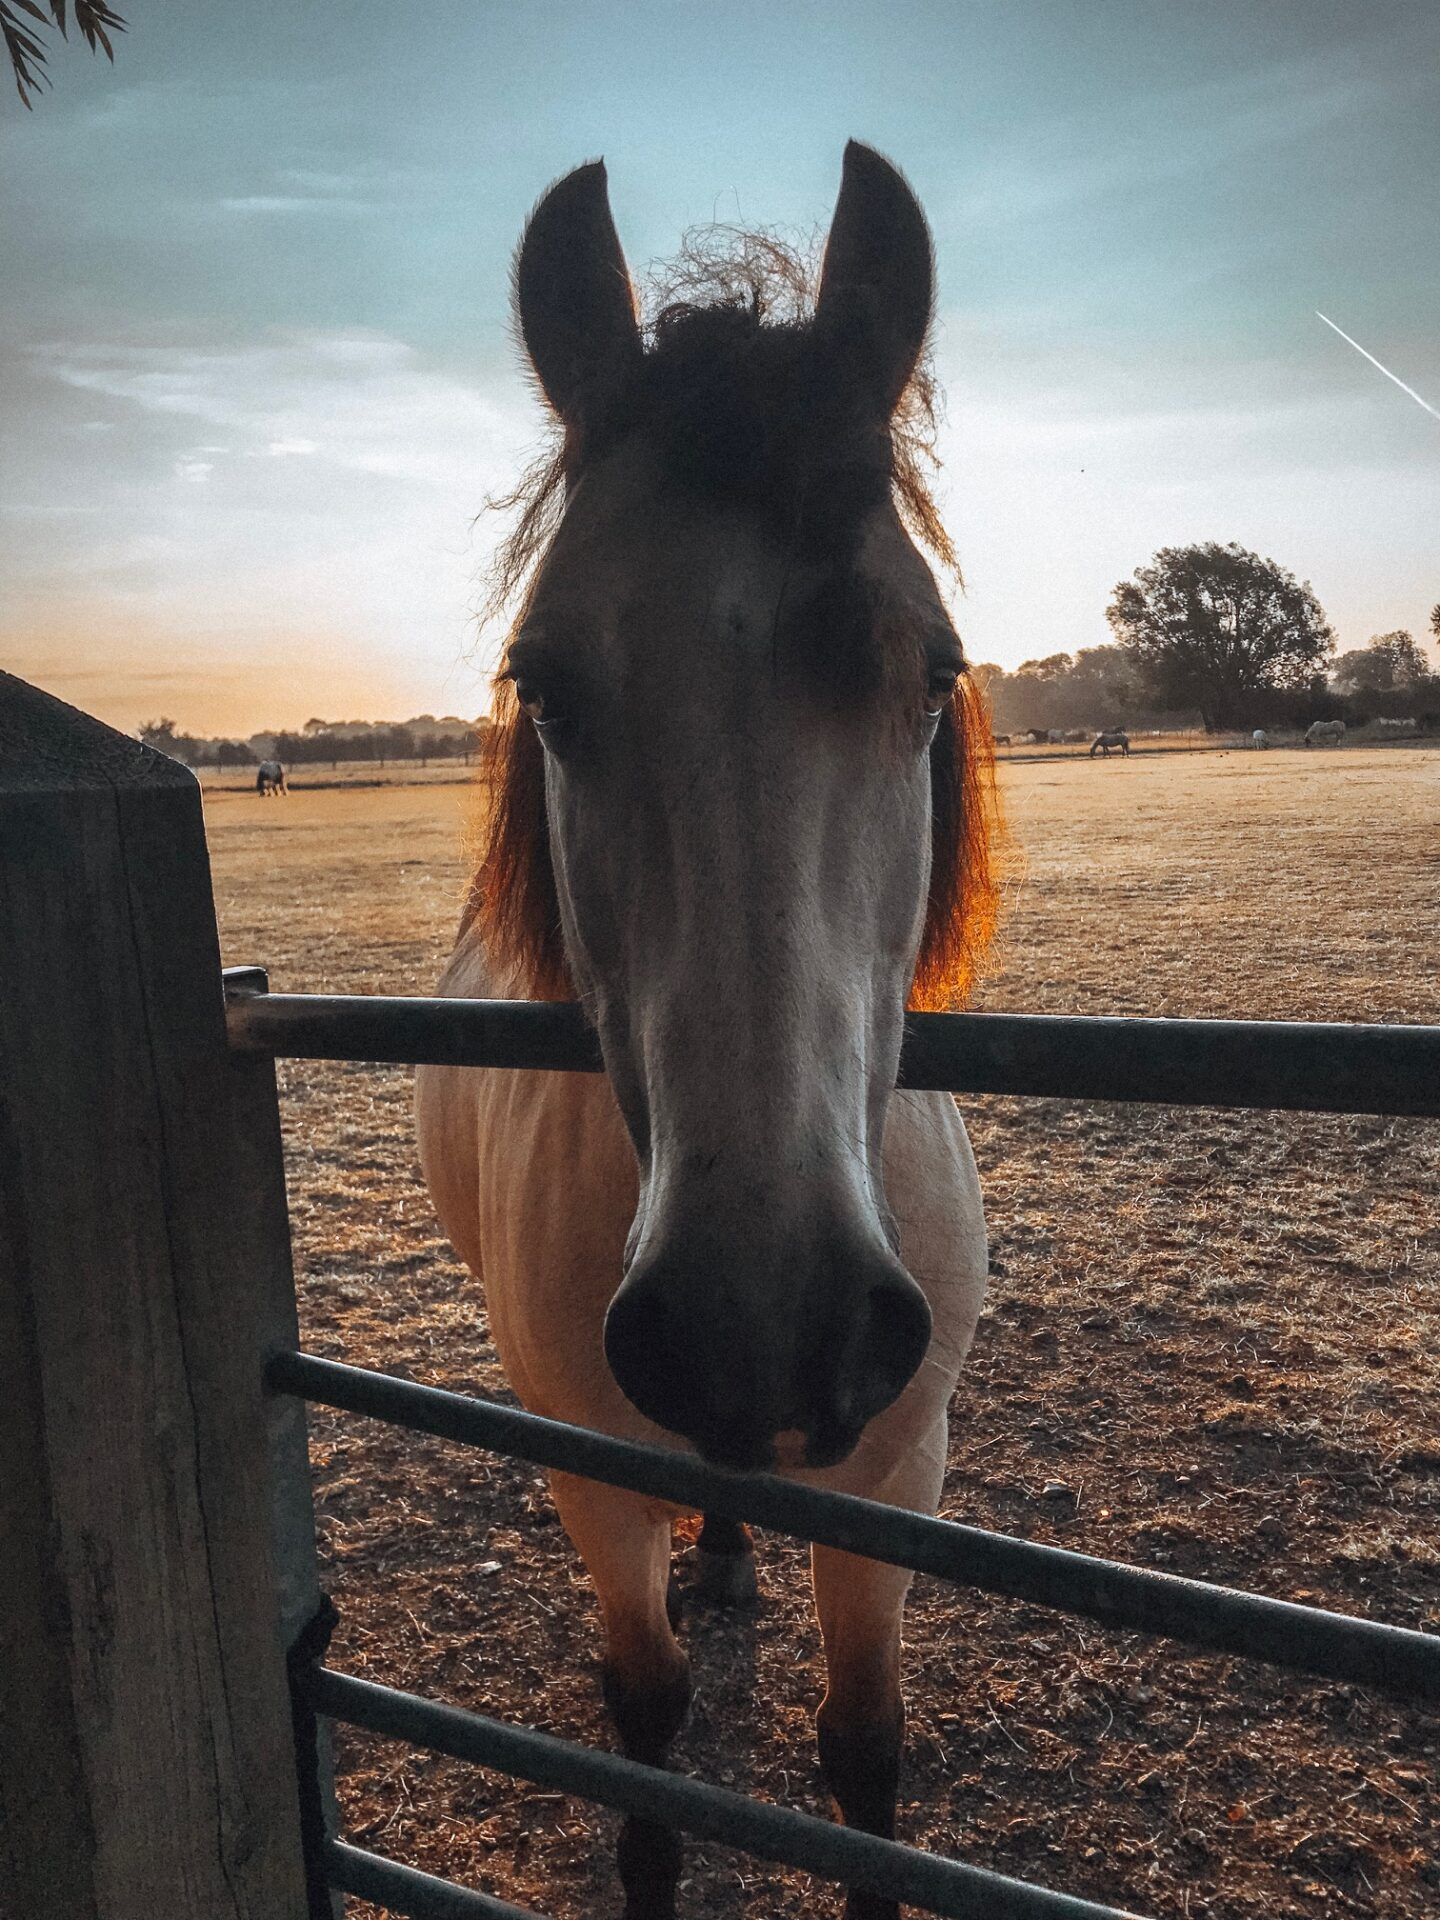 Dun pony looks over a gate at sunrise